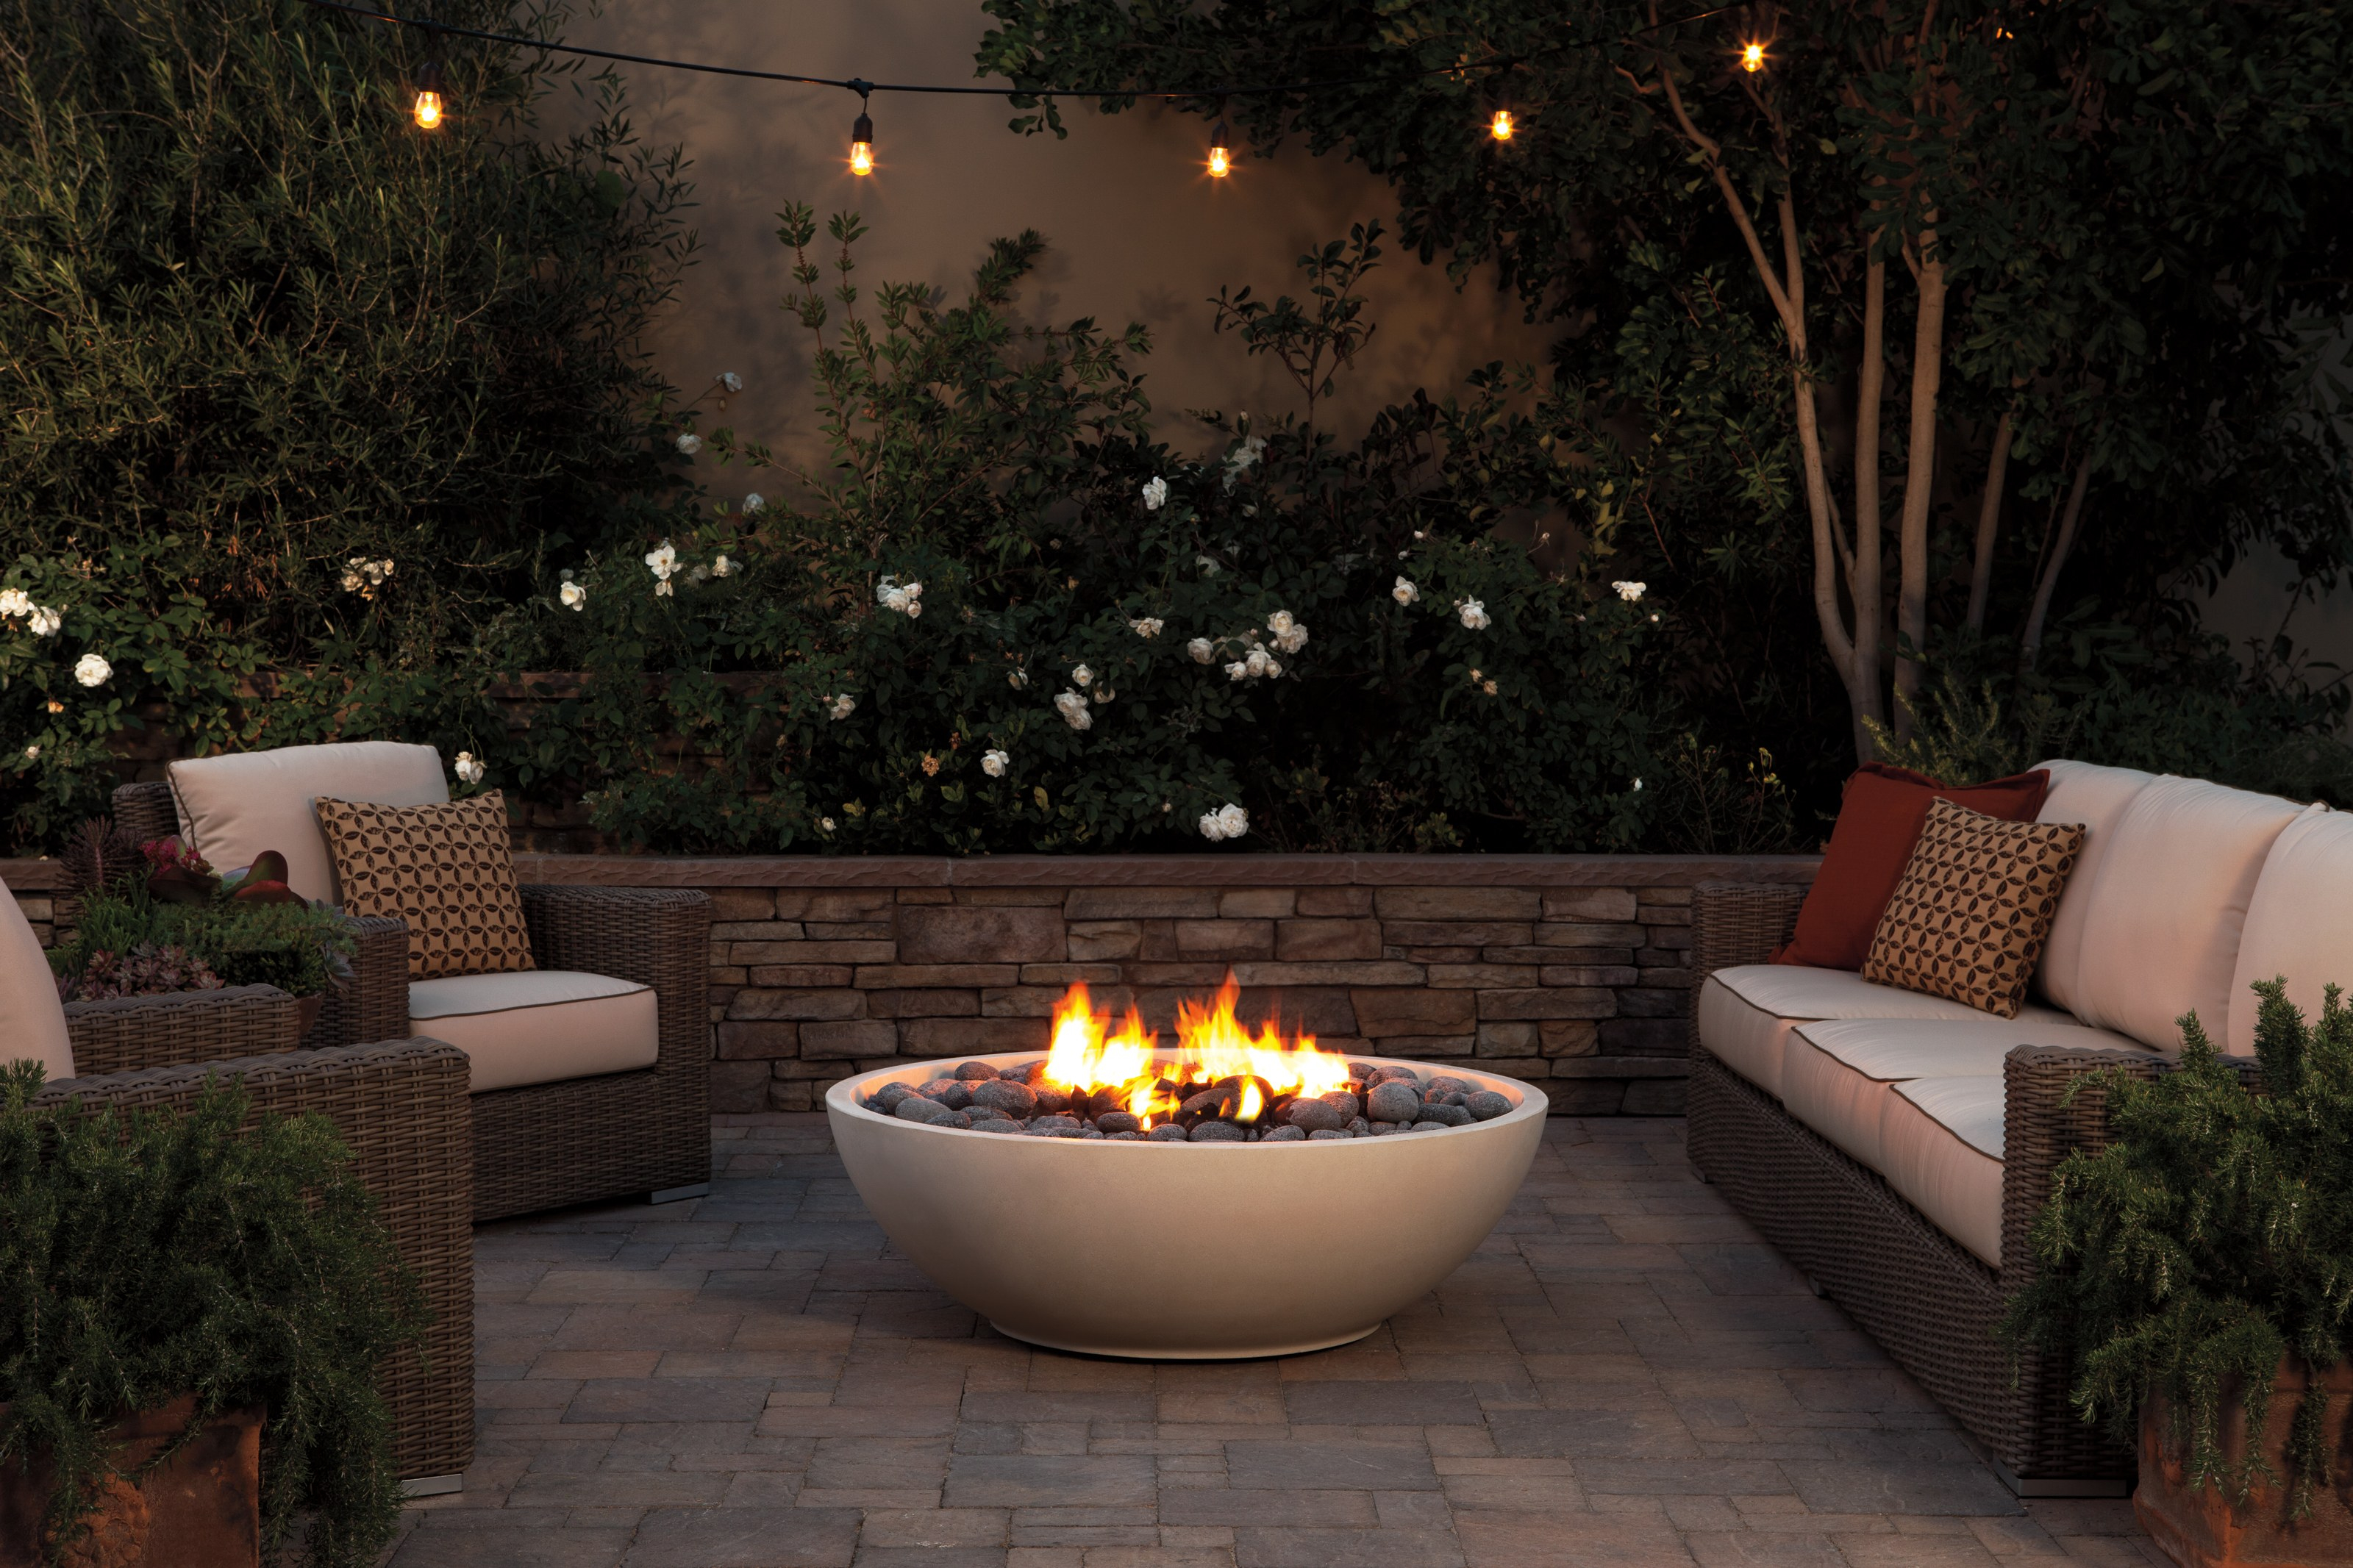 12 Patio Heaters To Make The Most Of A Terrace In Winter inside sizing 3200 X 2133